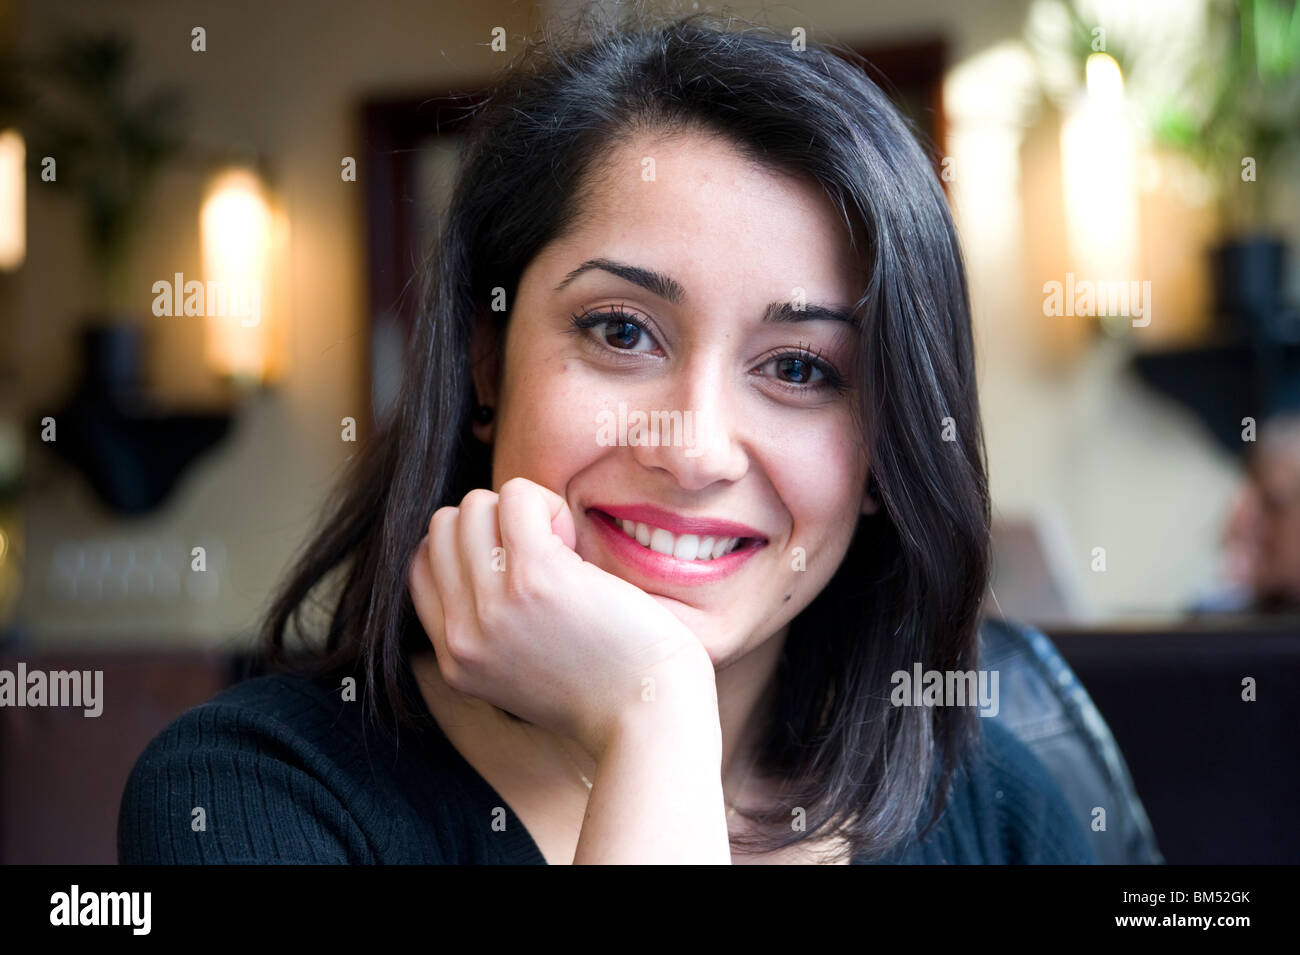 Portrait of young Turkish woman, England, UK - Stock Image